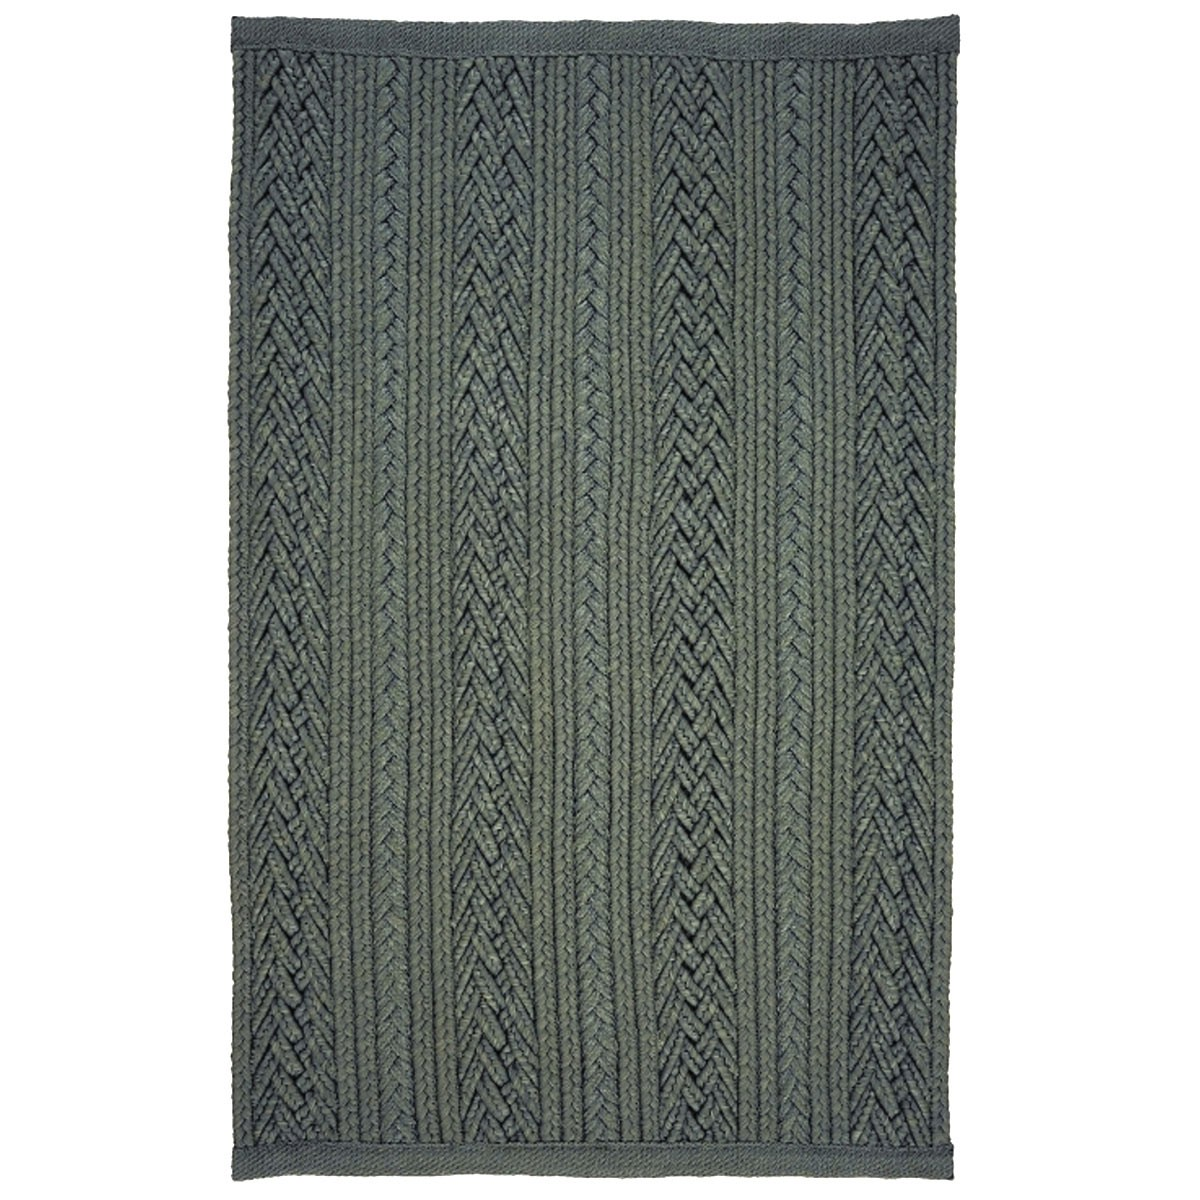 Laguna Silver Ultra Durable Braided Rugs